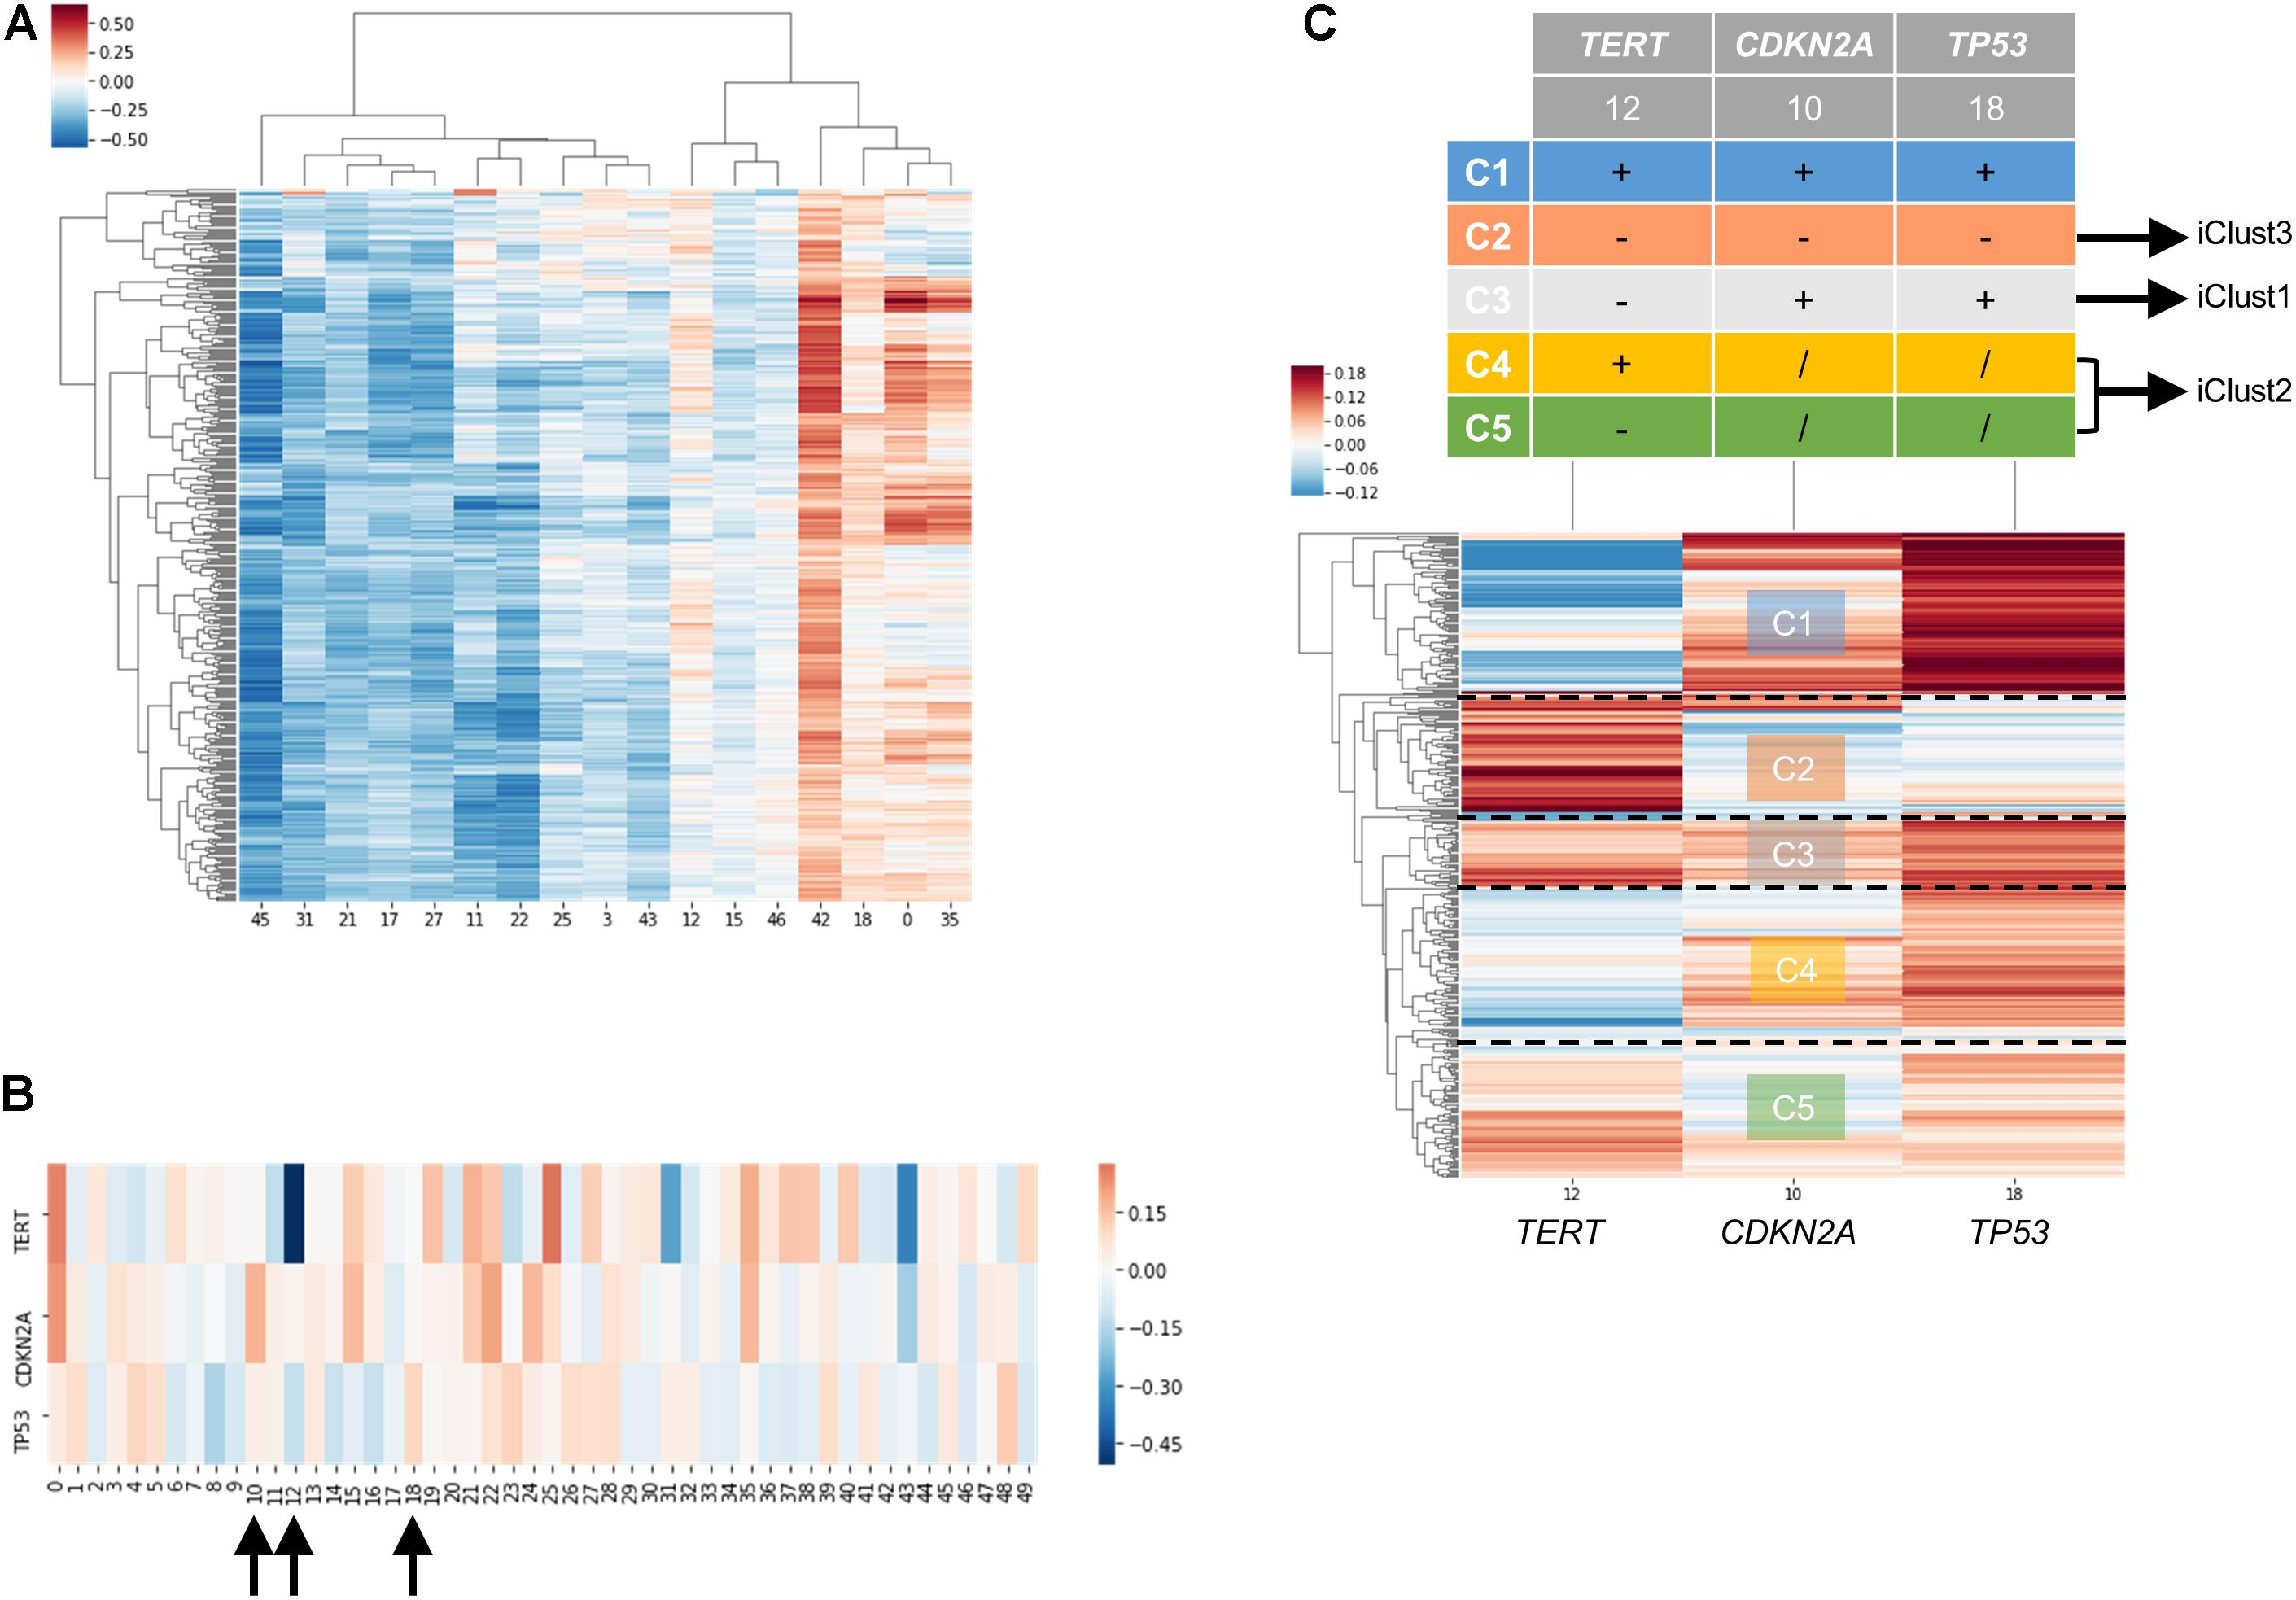 Frontiers | Embedding of Genes Using Cancer Gene Expression